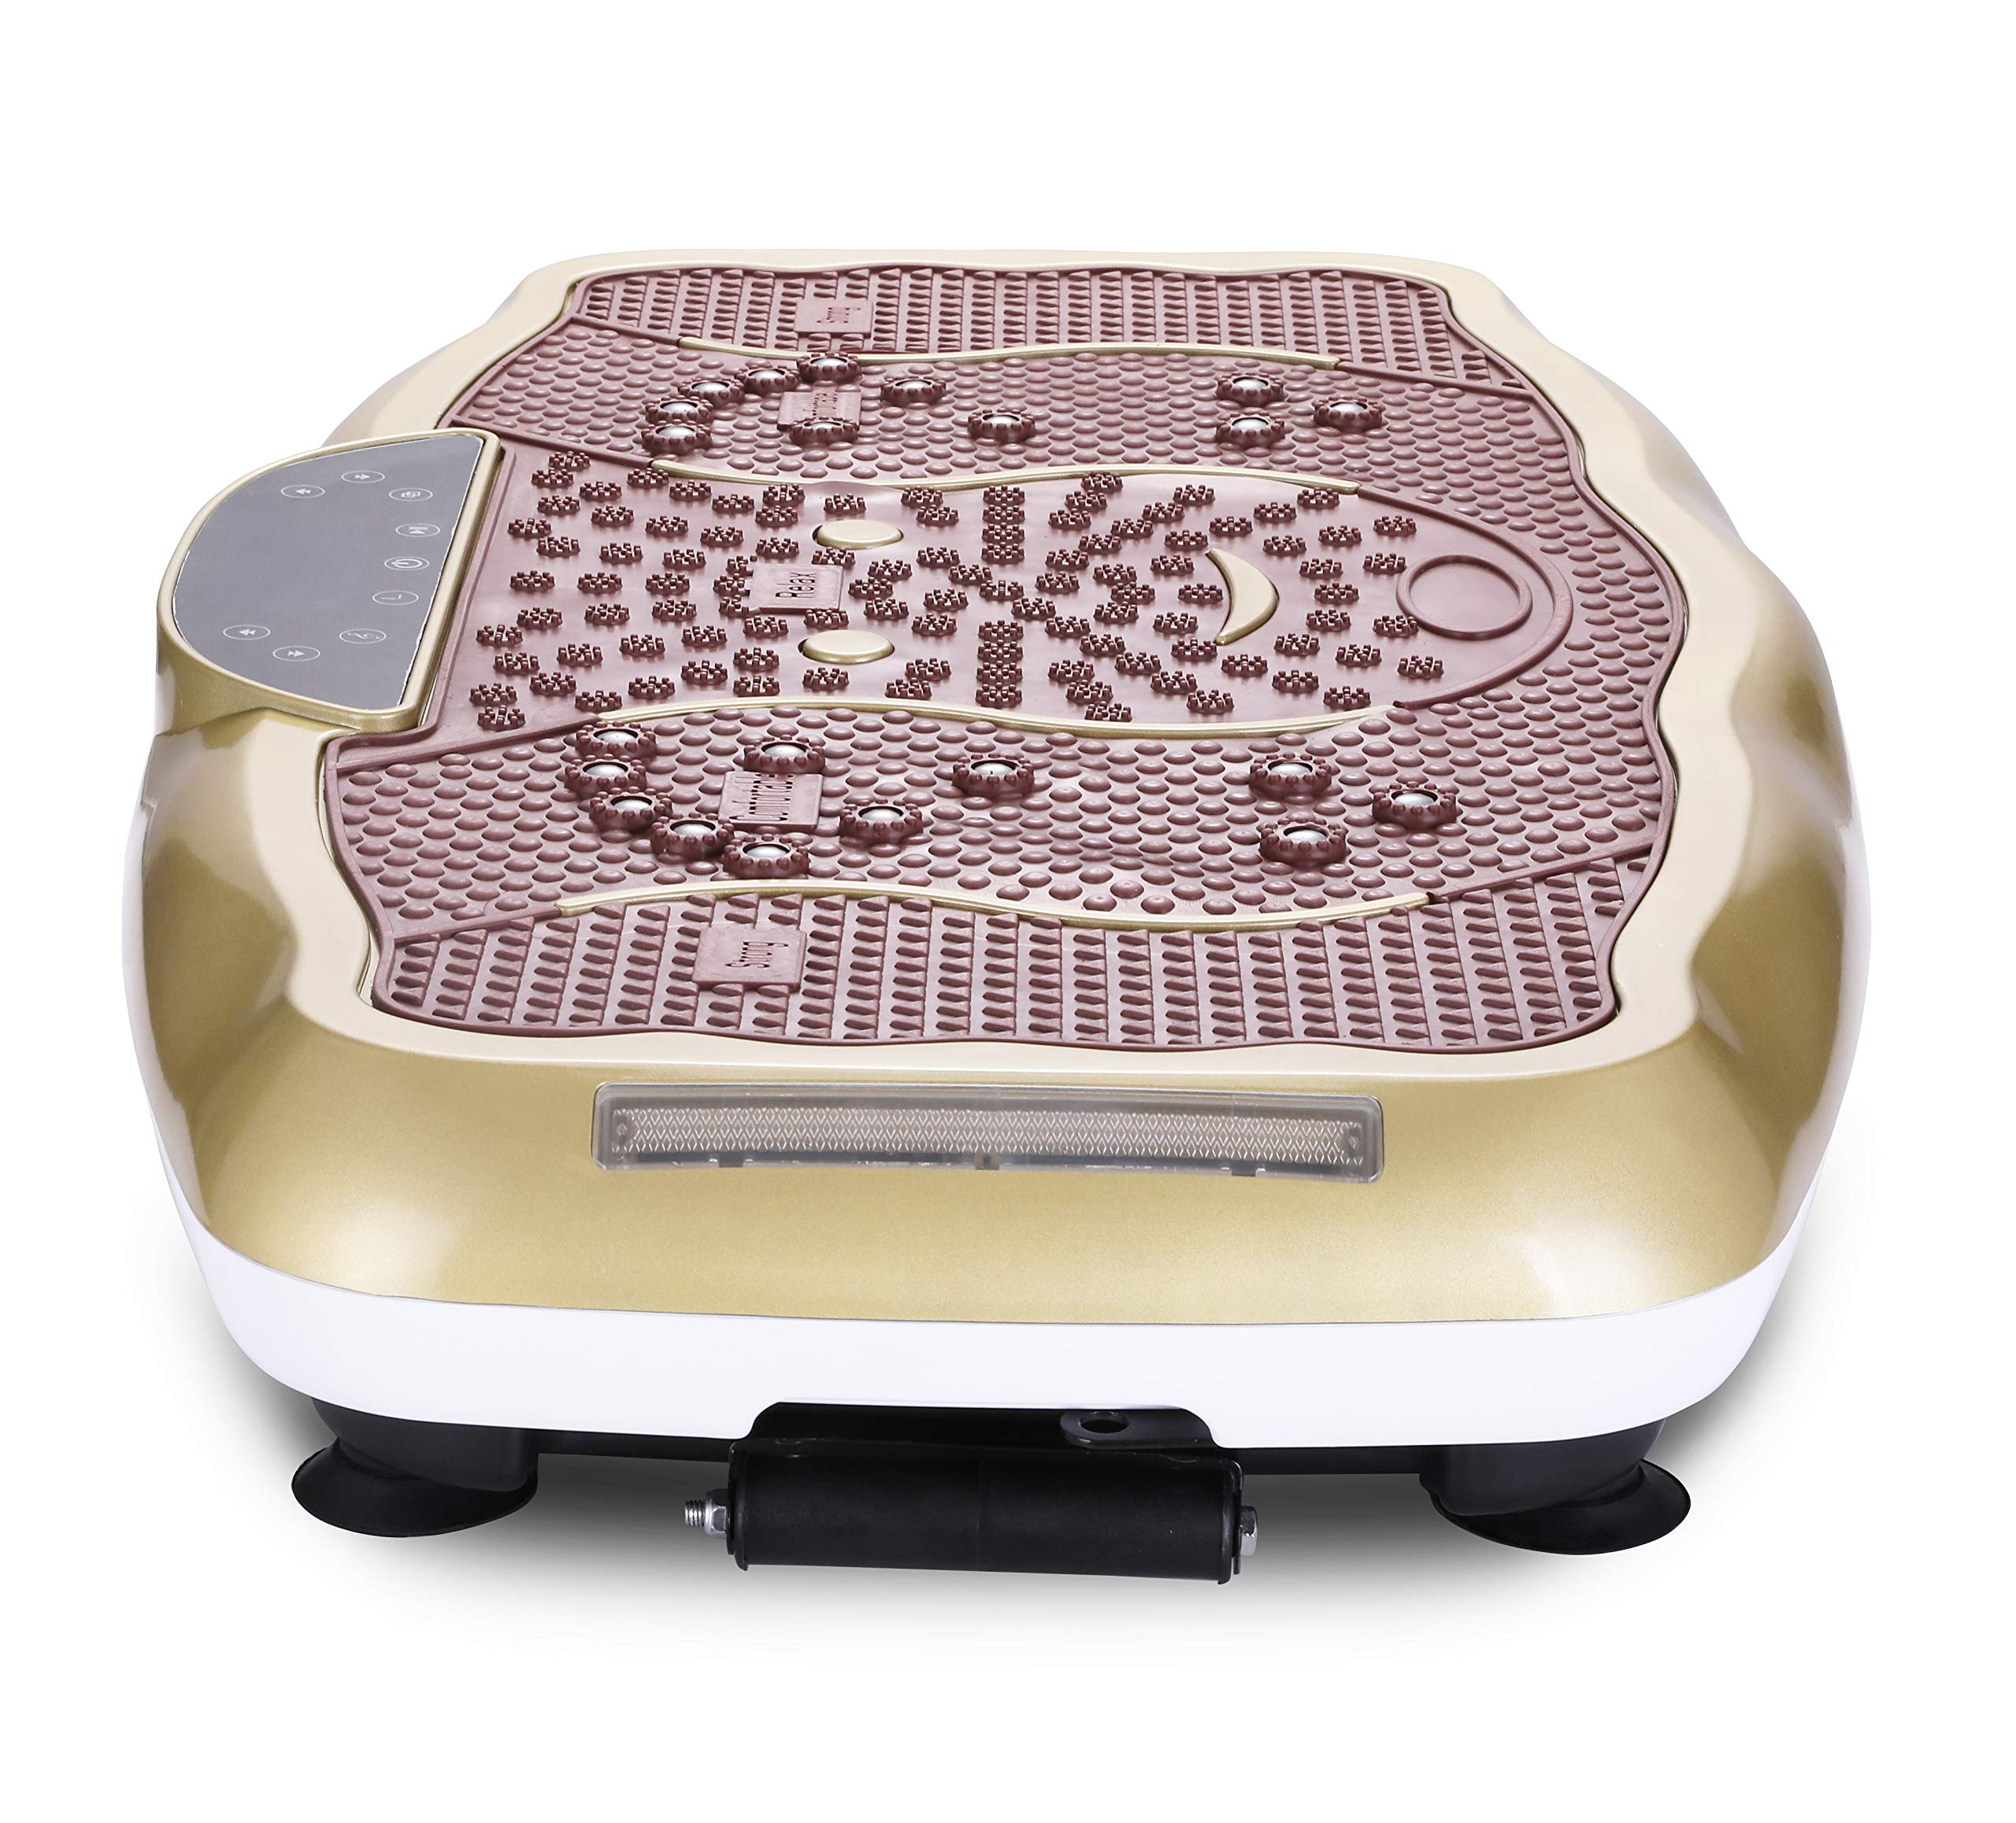 TODO Vibration Platform Power Plate Wholebody Vibrating Massager- Remote Control/Bluetooth Music/USB Connection(Gold-Smile) by TODO (Image #6)